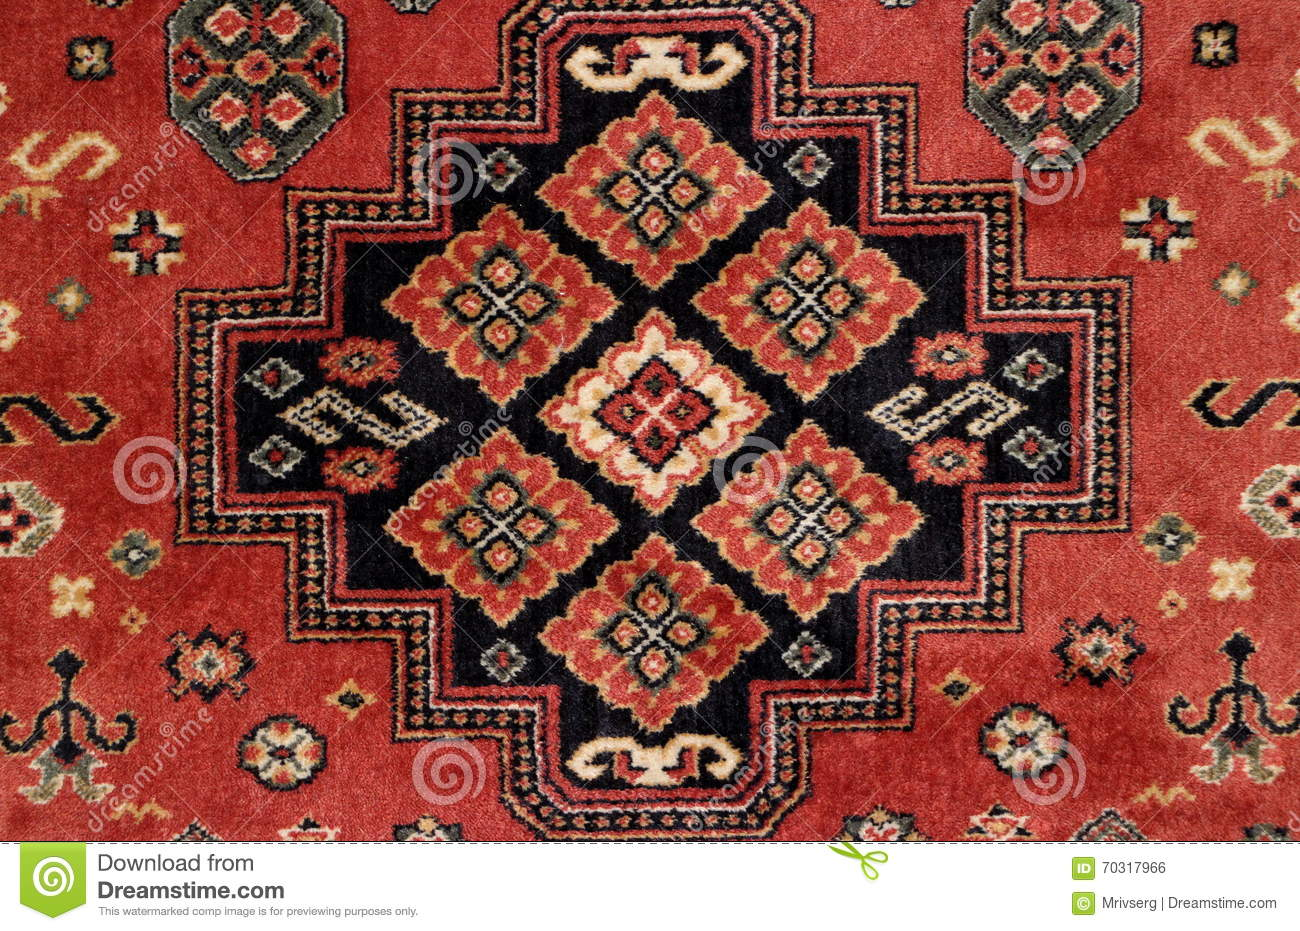 history life rug universe flower sacred of the geometry documentary youtube watch ancient